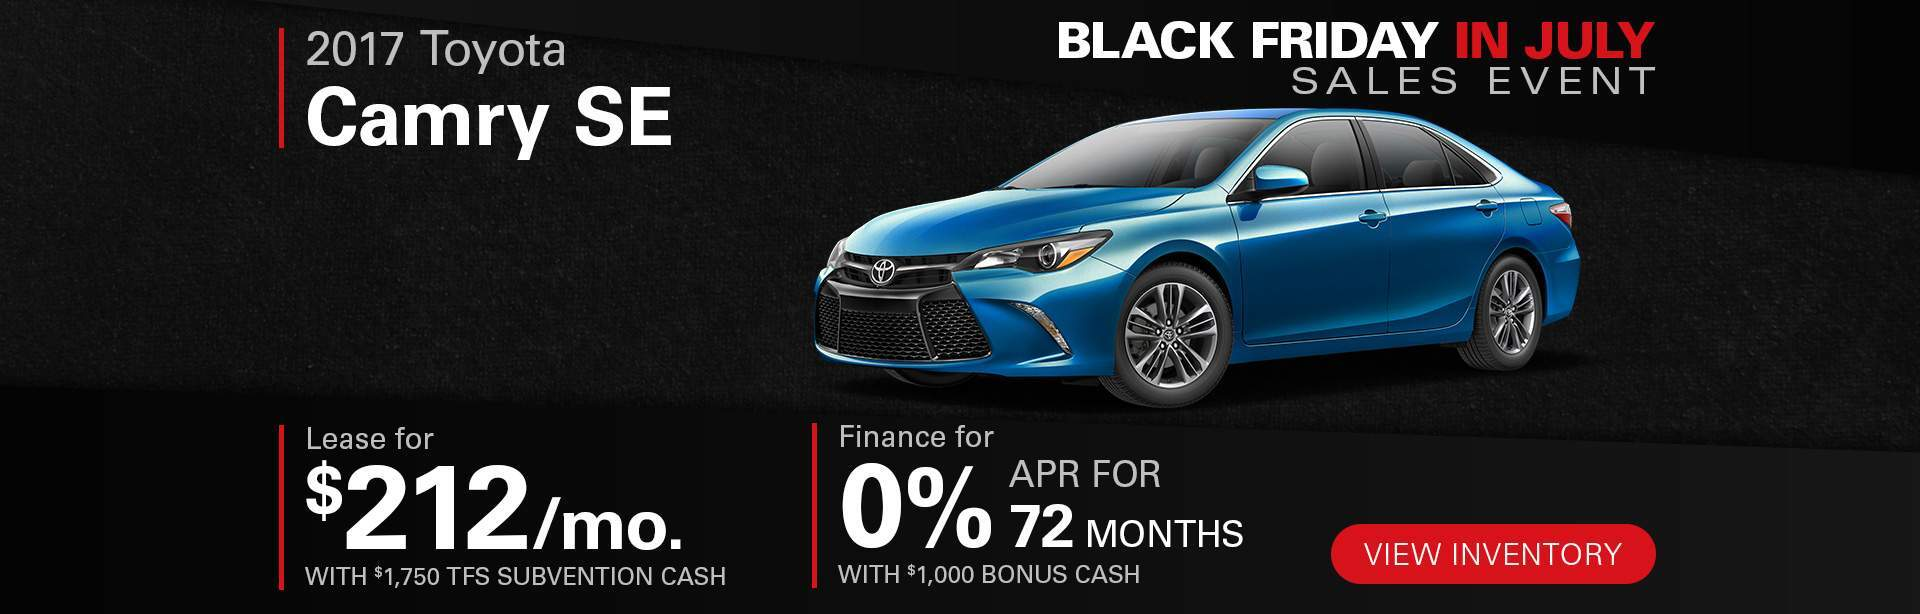 Black Friday In July Camry SE